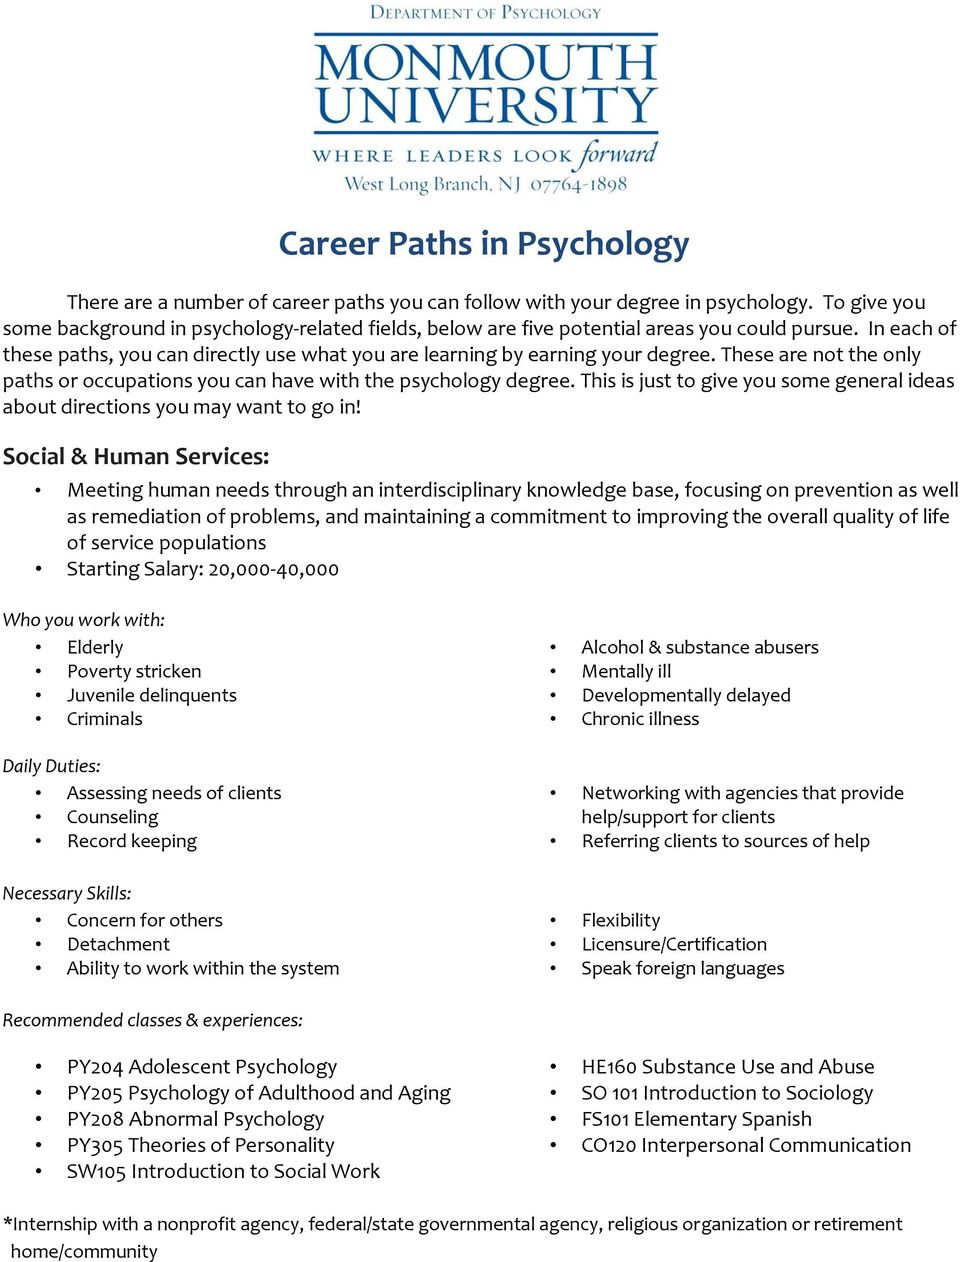 These are not the only paths or occupations you can have with the psychology degree. This is just to give you some general ideas about directions you may want to go in!